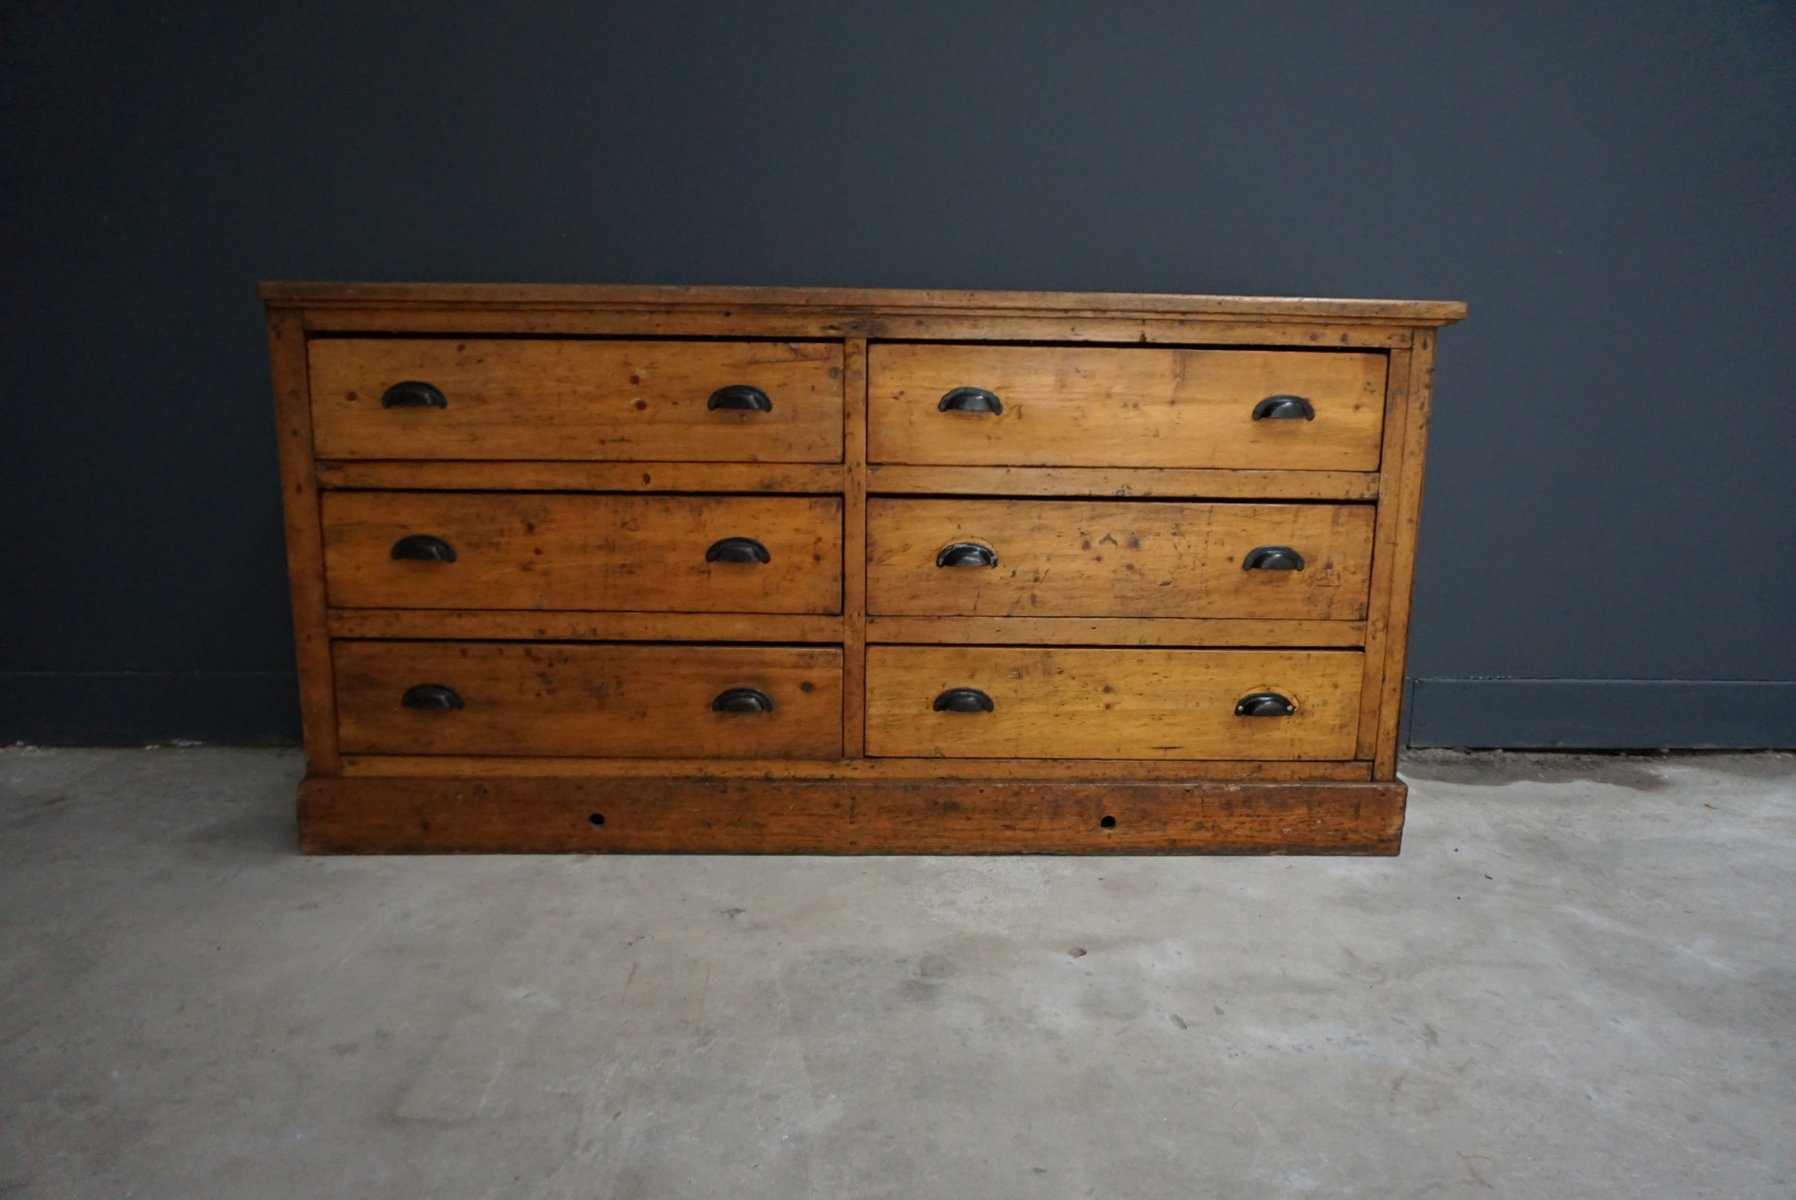 Vintage French Pine and Beech Wood Apothecary Cabinet, 1930s for ...